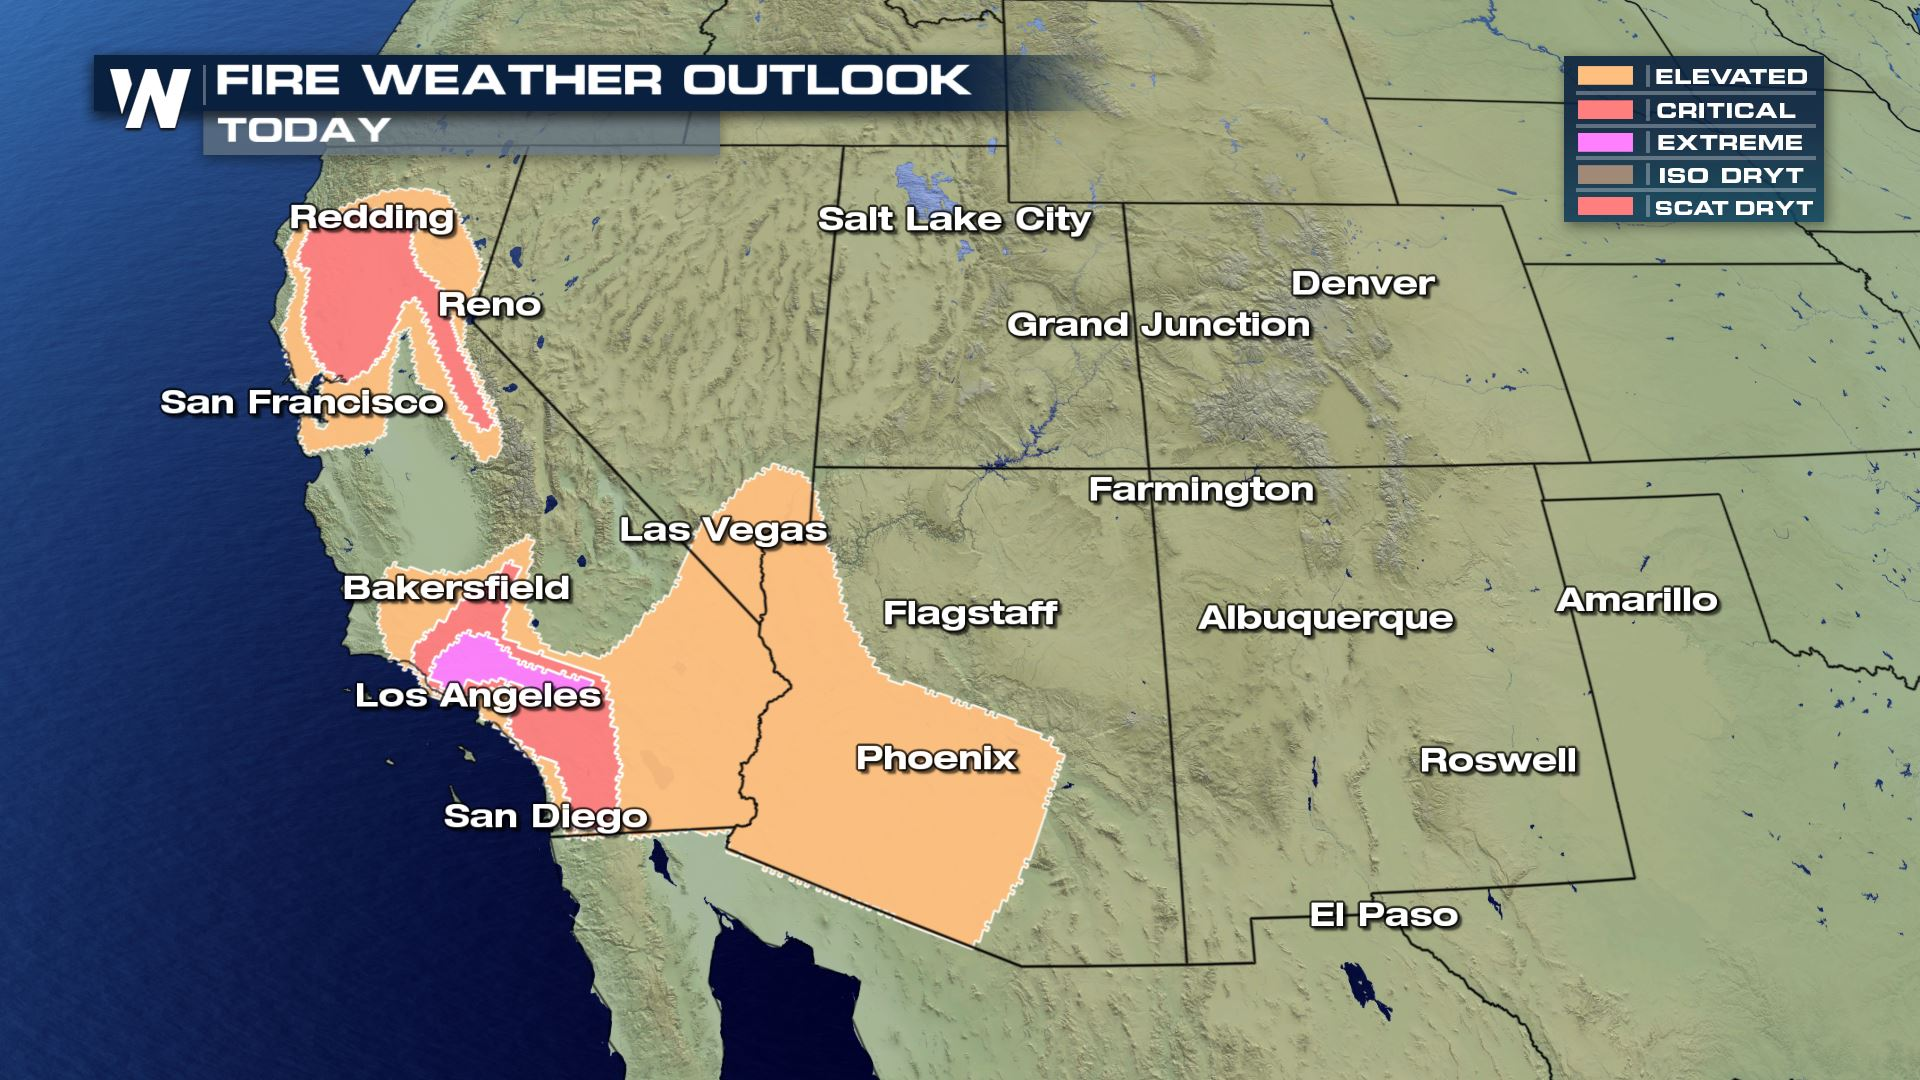 High Fire Danger in the Southwest